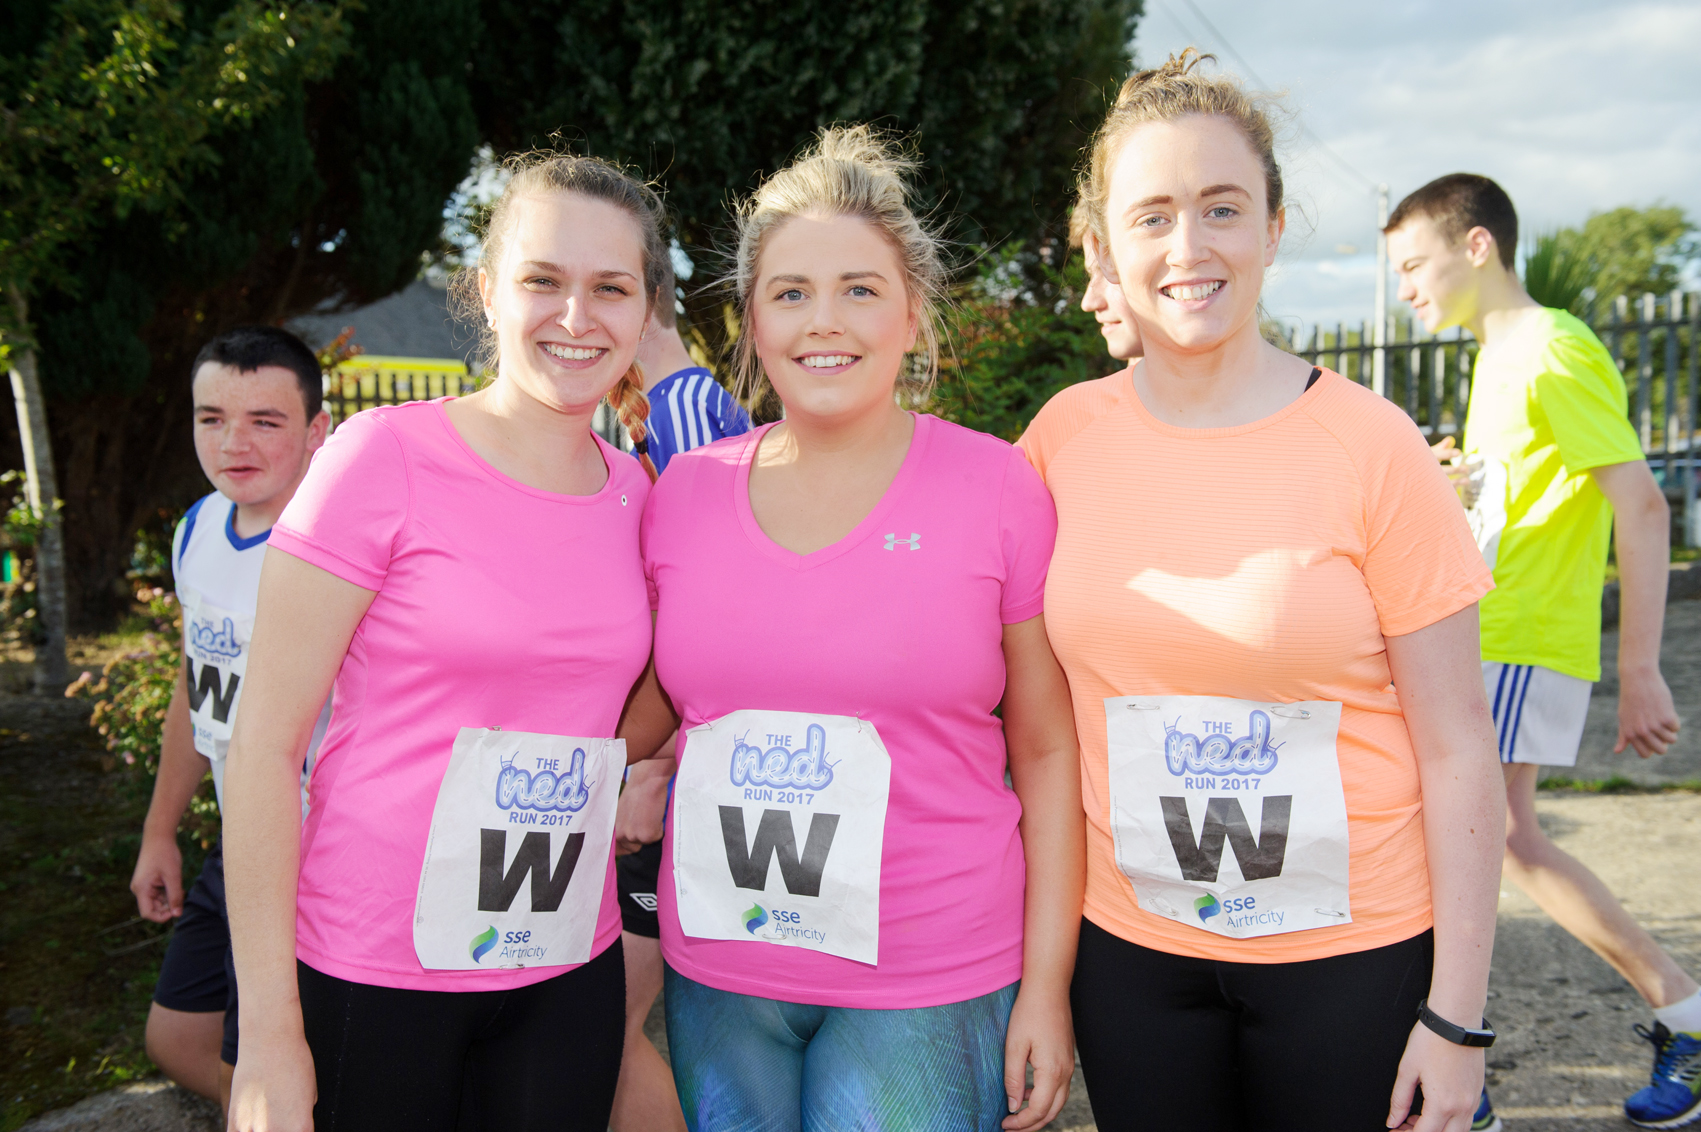 At The Ned Run in Scotstown were (L-R) EricaMcKenna, Laura McKenna and Rose McKenna. ©Rory Geary/The Northern Standard